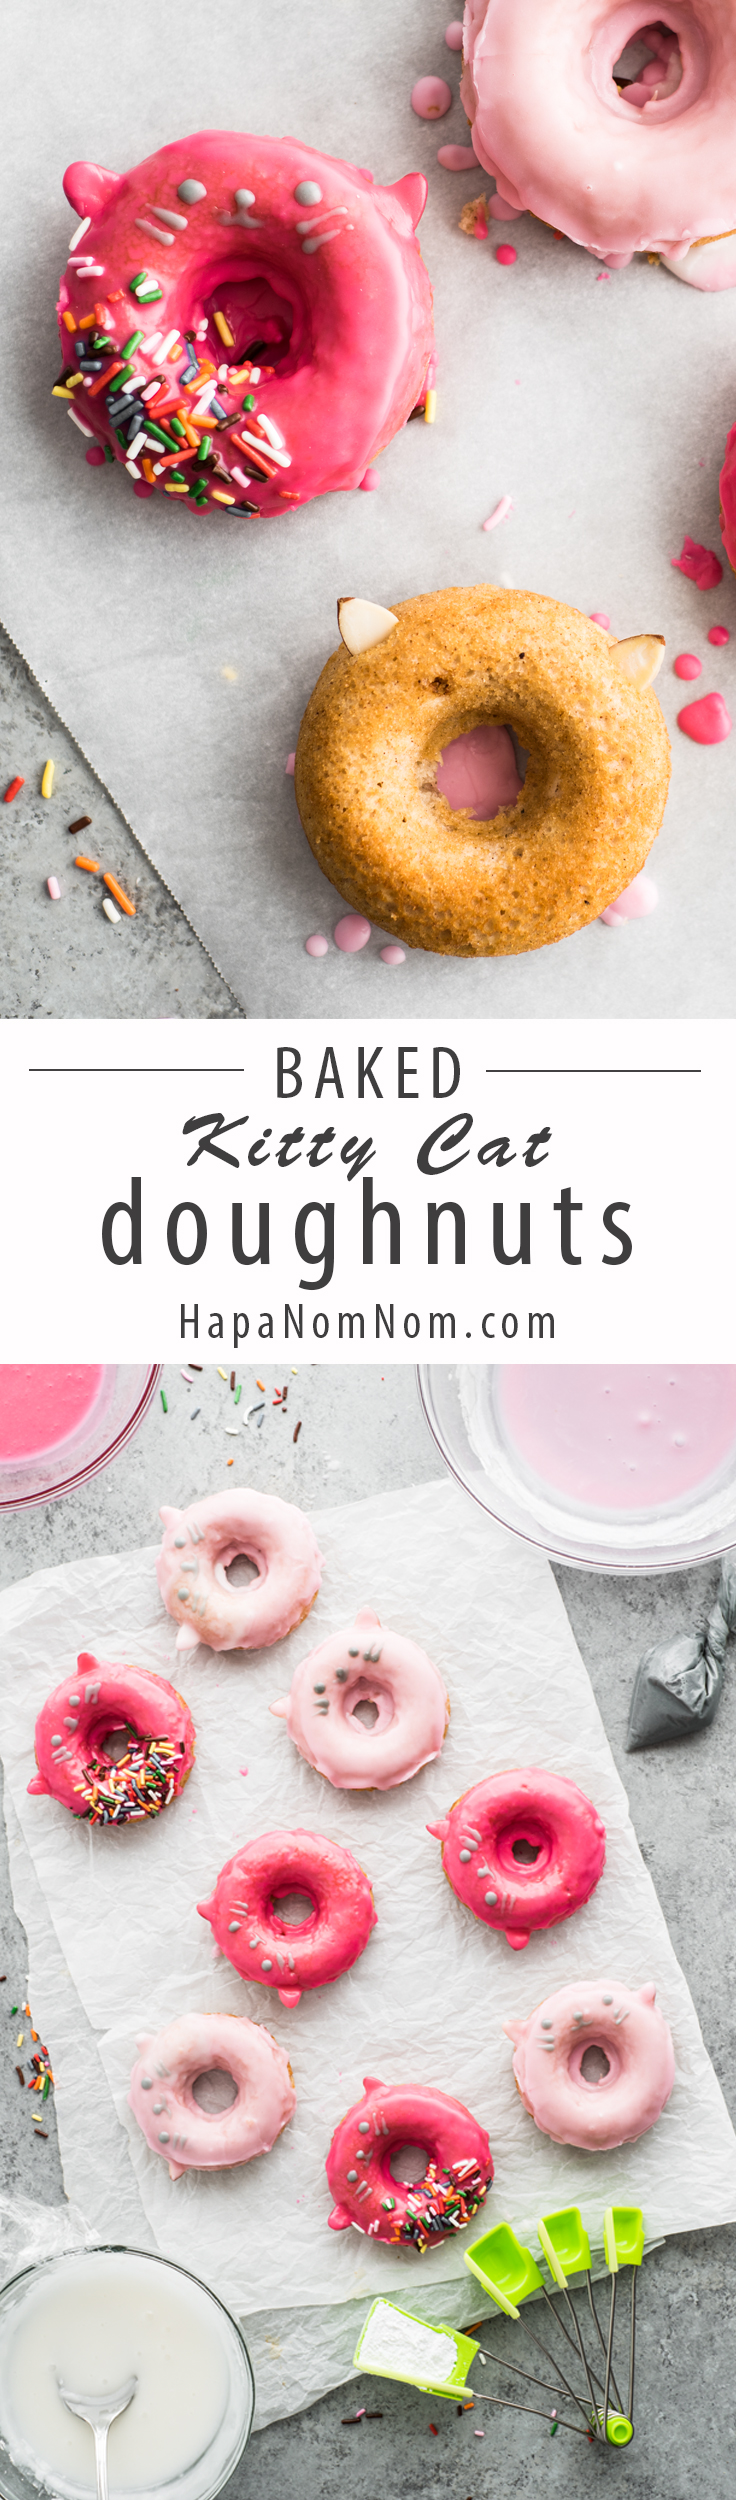 These baked kitty cat doughnuts are SO adorable, they're sure to bring a smile to anyone's face!